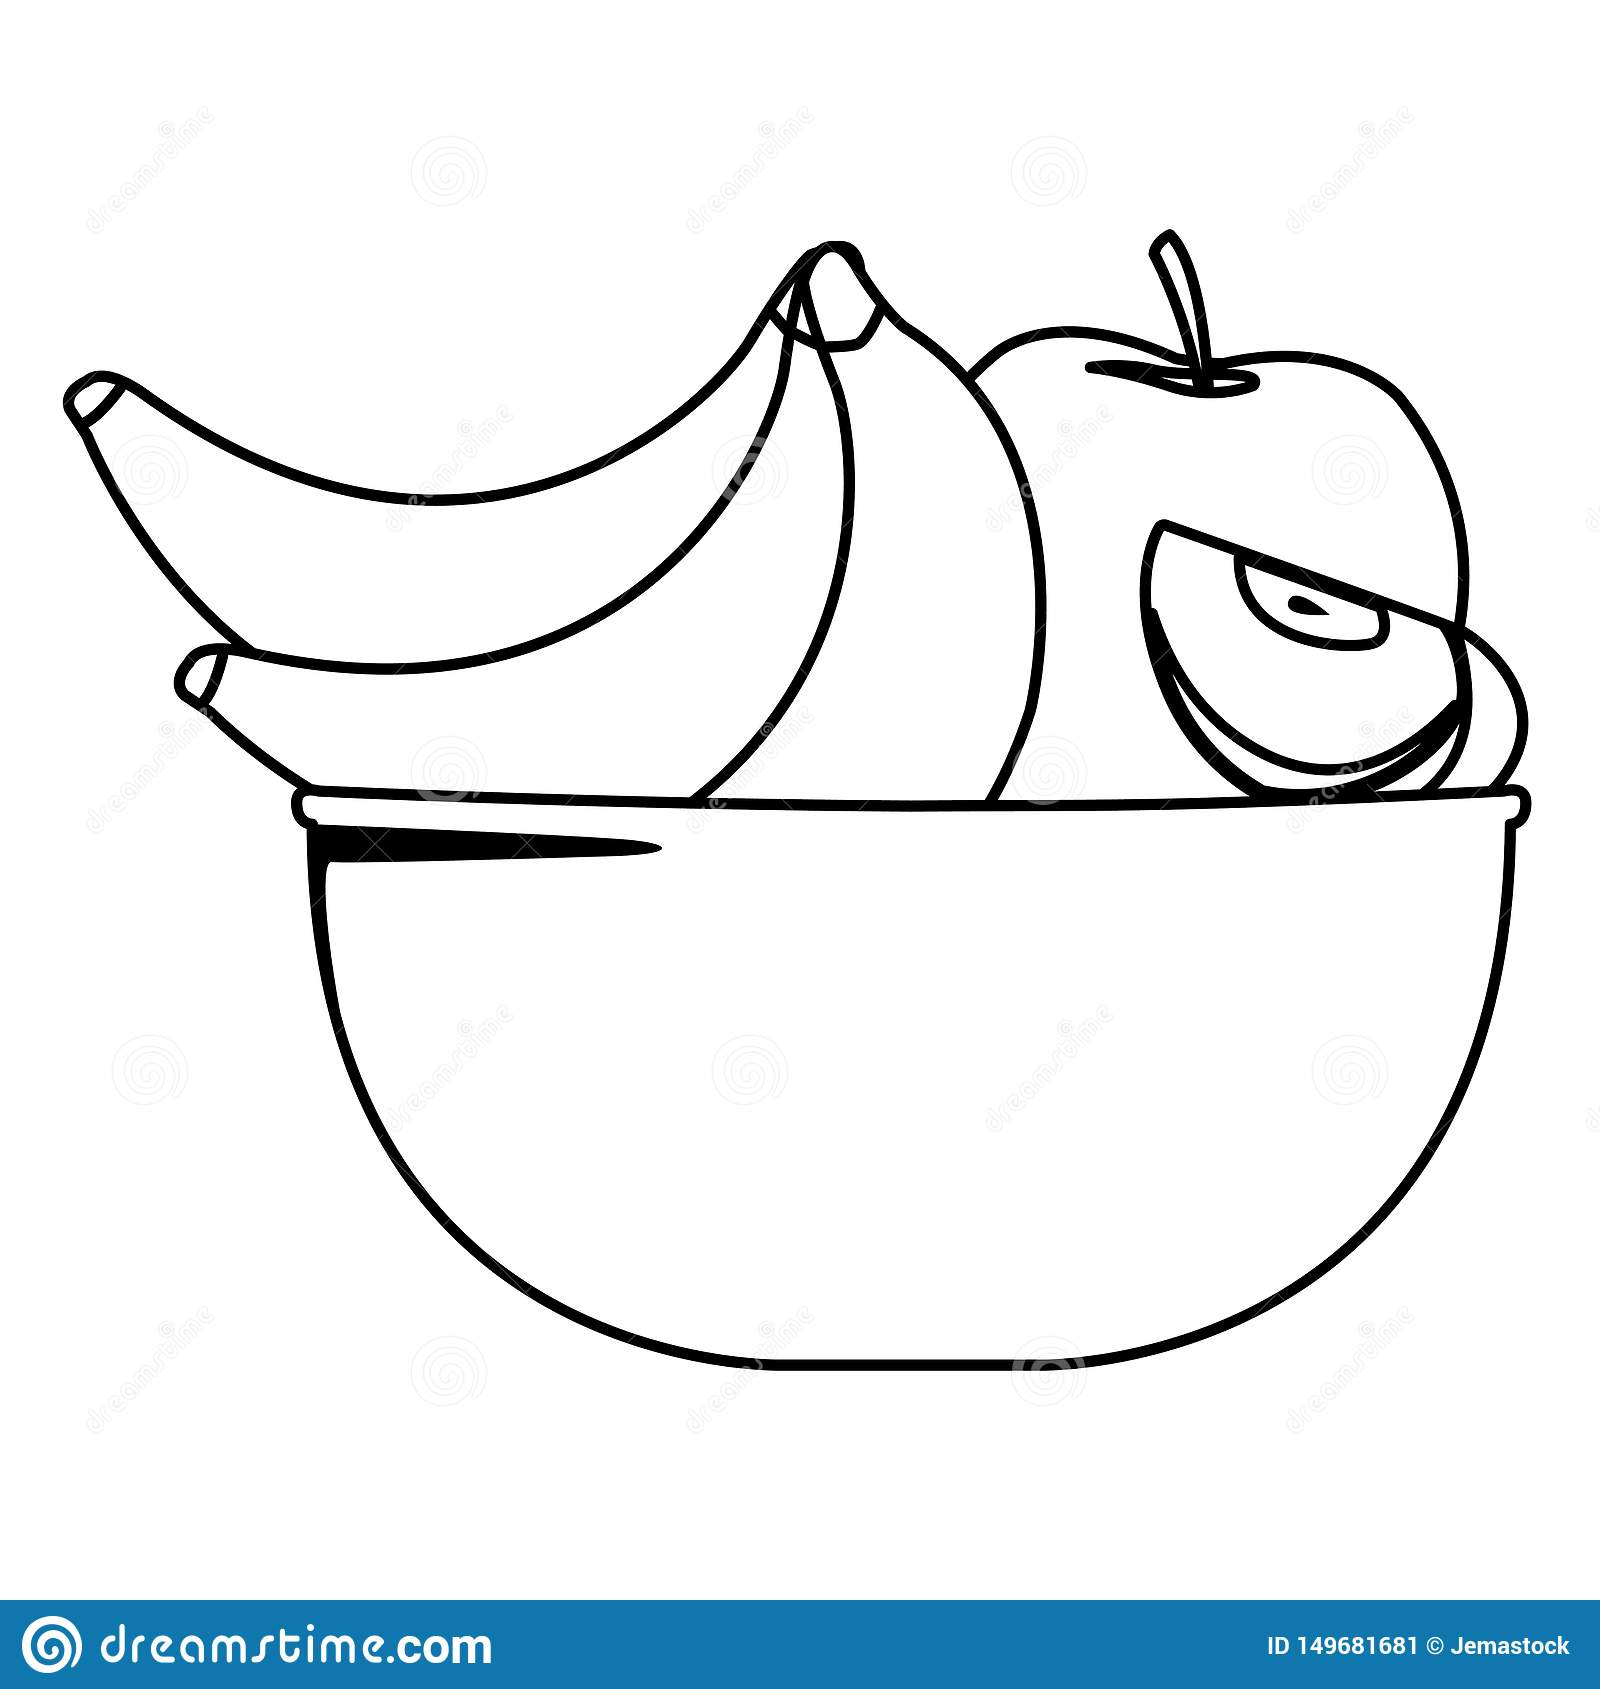 fresh fruits in bowl cartoon in black and white stock vector illustration of bowl sweet 149681681 https www dreamstime com fresh fruits bowl cartoon black white bananas apples vector illustration graphic design image149681681